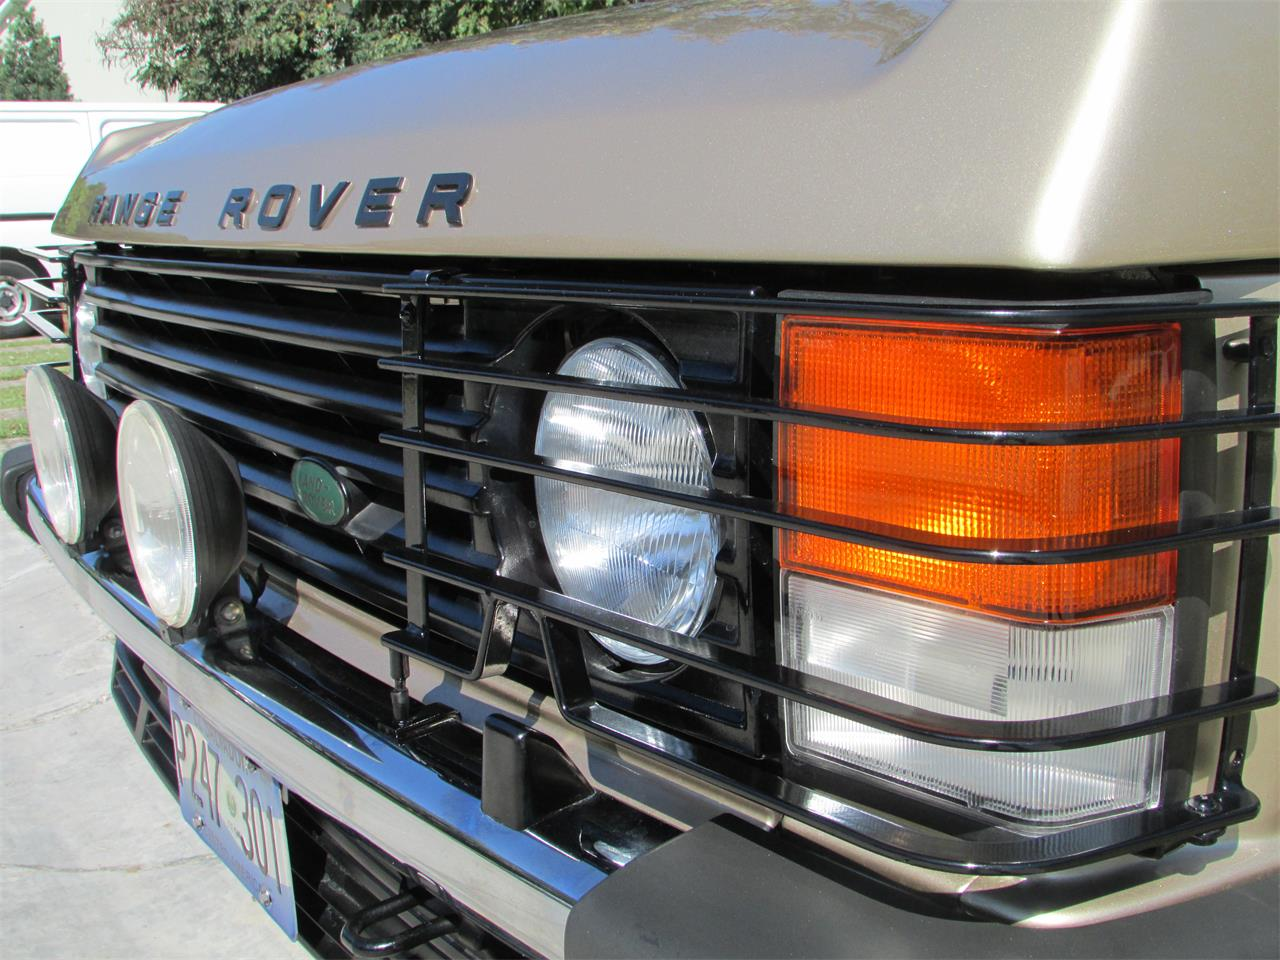 Large Picture of '93 Range Rover - $19,500.00 Offered by a Private Seller - GELK